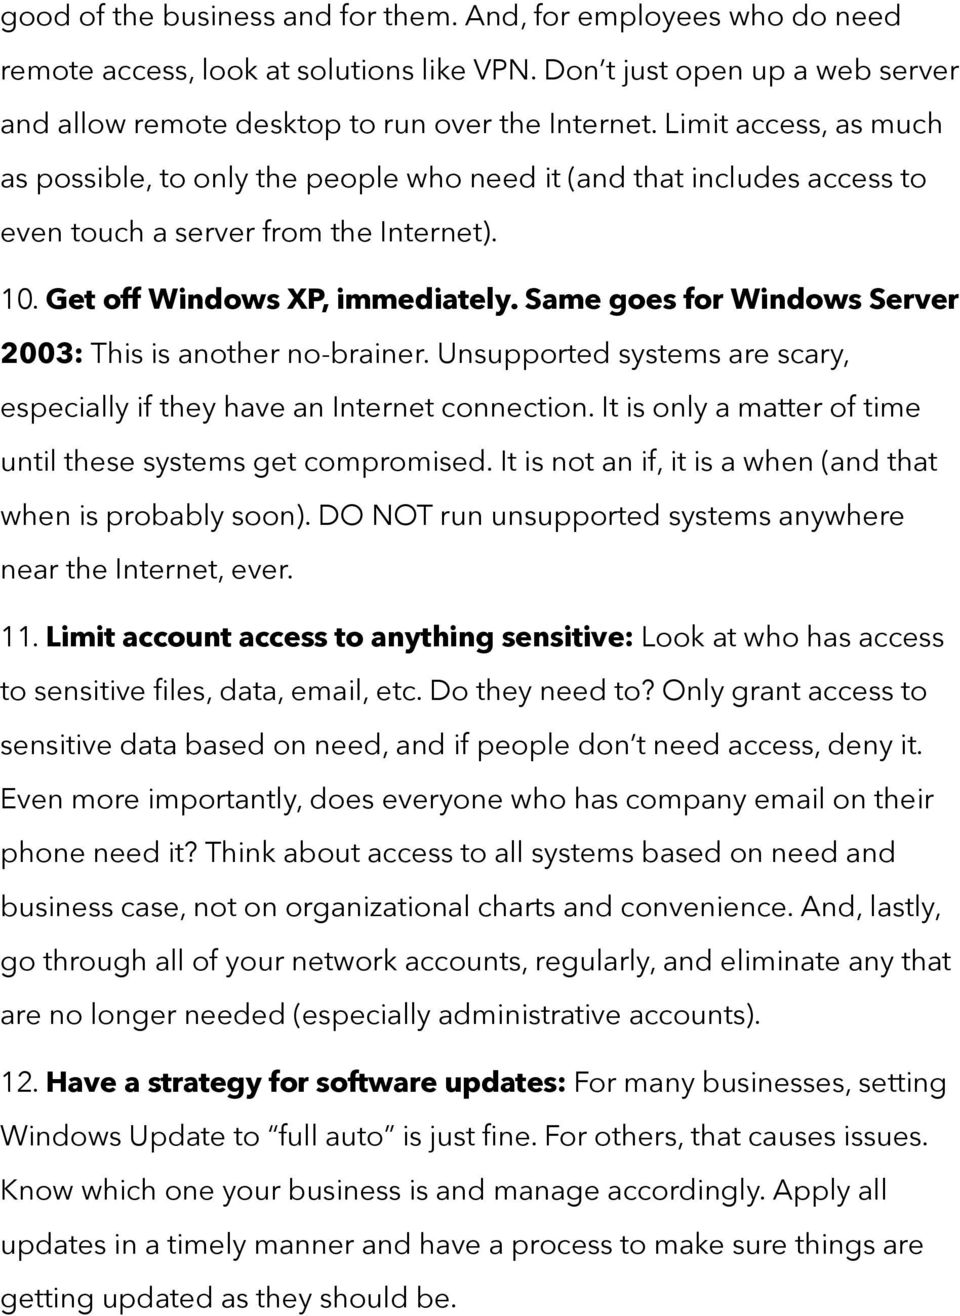 Same goes for Windows Server 2003: This is another no-brainer. Unsupported systems are scary, especially if they have an Internet connection.